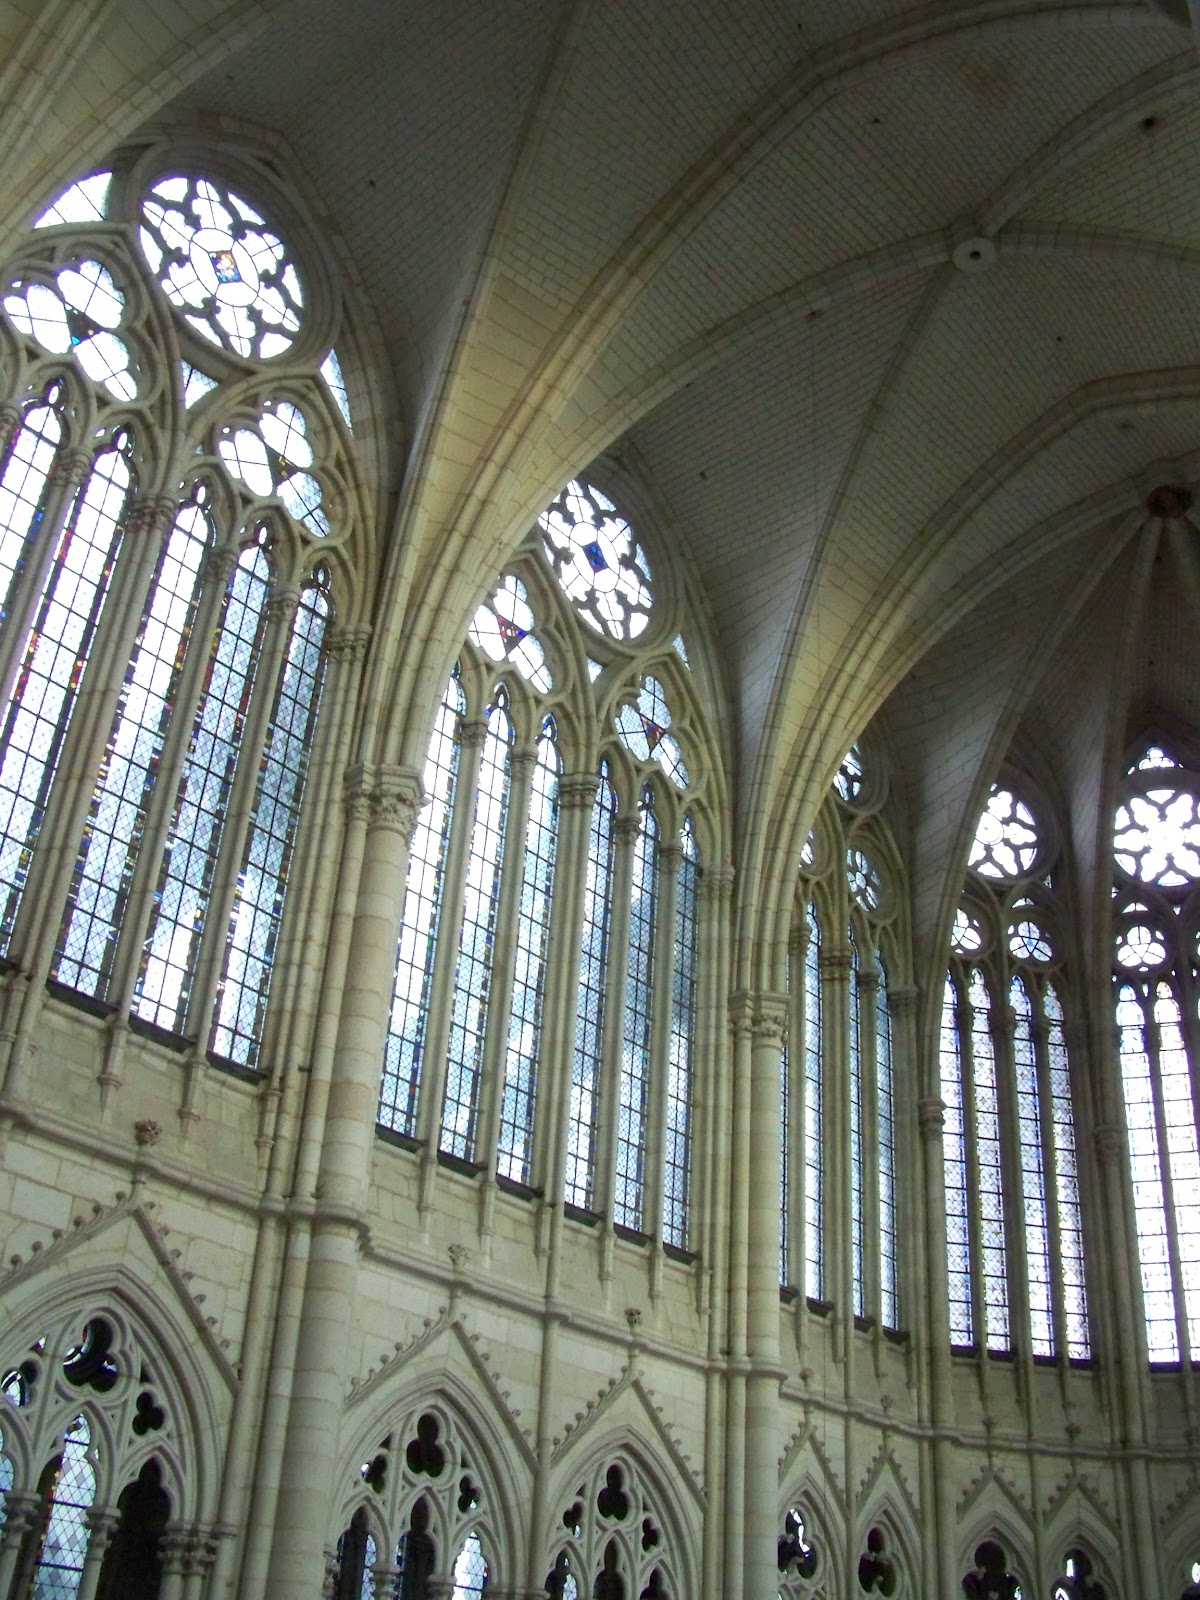 Here You Can See An Example Of The Clerestory Windows At Amiens Cathedral In France Note Vaulted And Ribbed Pointed Arches Ceiling How